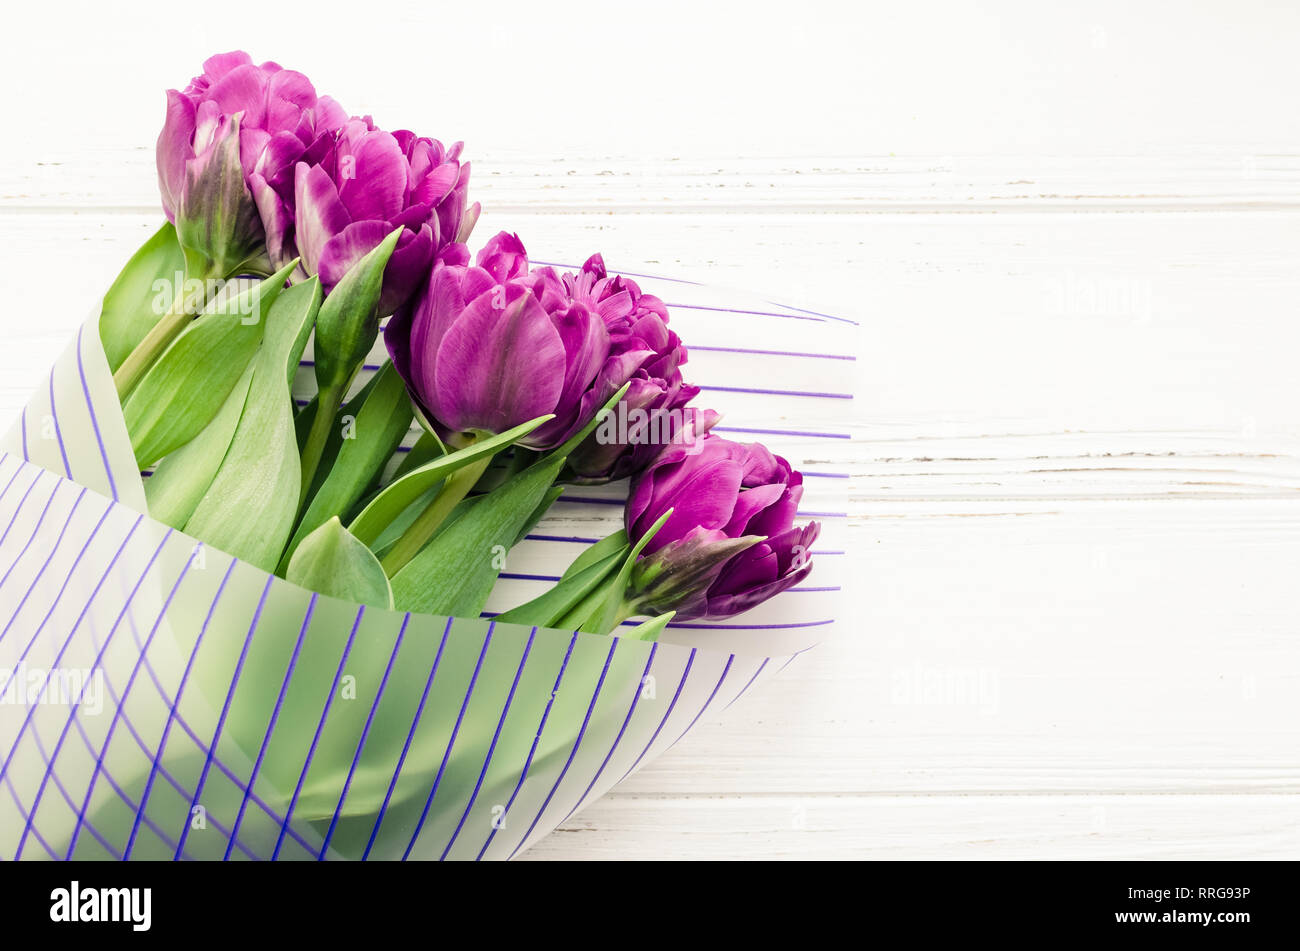 d1c2f5acebbbe Ultraviolet tulip flowers on white shabby chic wooden background. Bouquet  of purple spring tulips. Happy Mother's Day. Valentine's greetings card. Int